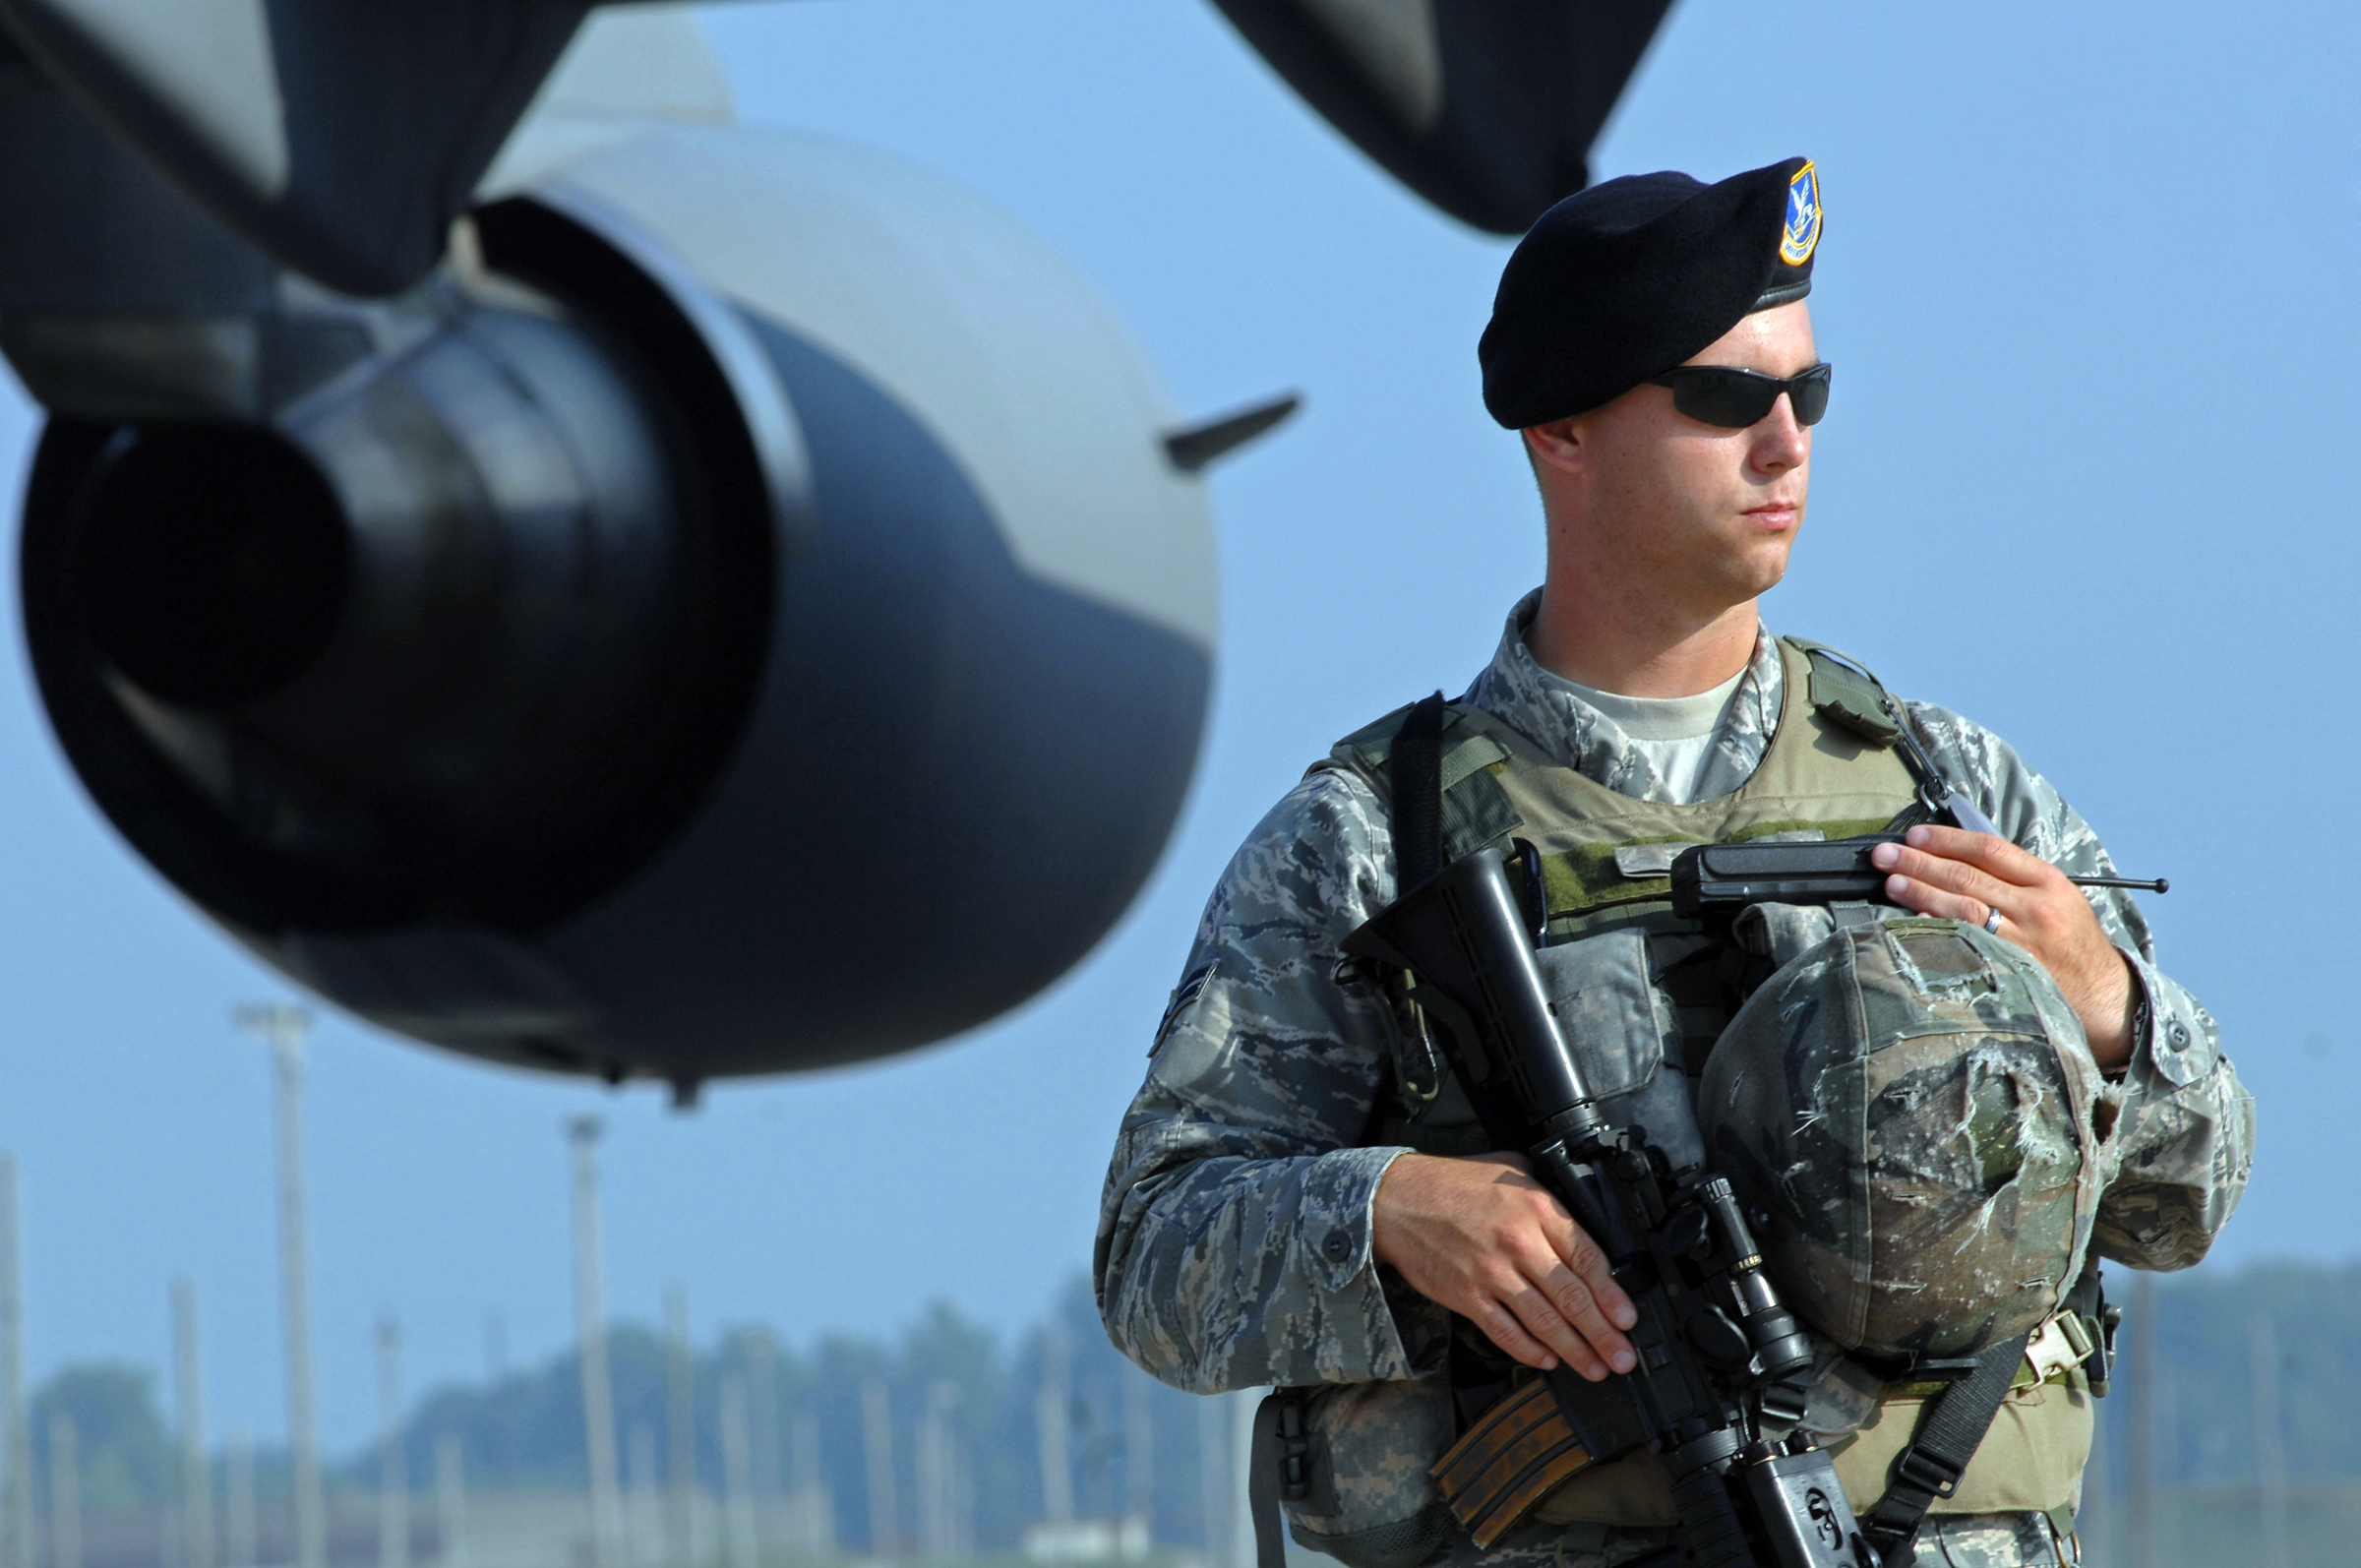 united states air force security forces Here is a video i put together showcasing the united states air force rate security forces or sf songs 1 battleme: touch 2 linkin park: new divide.